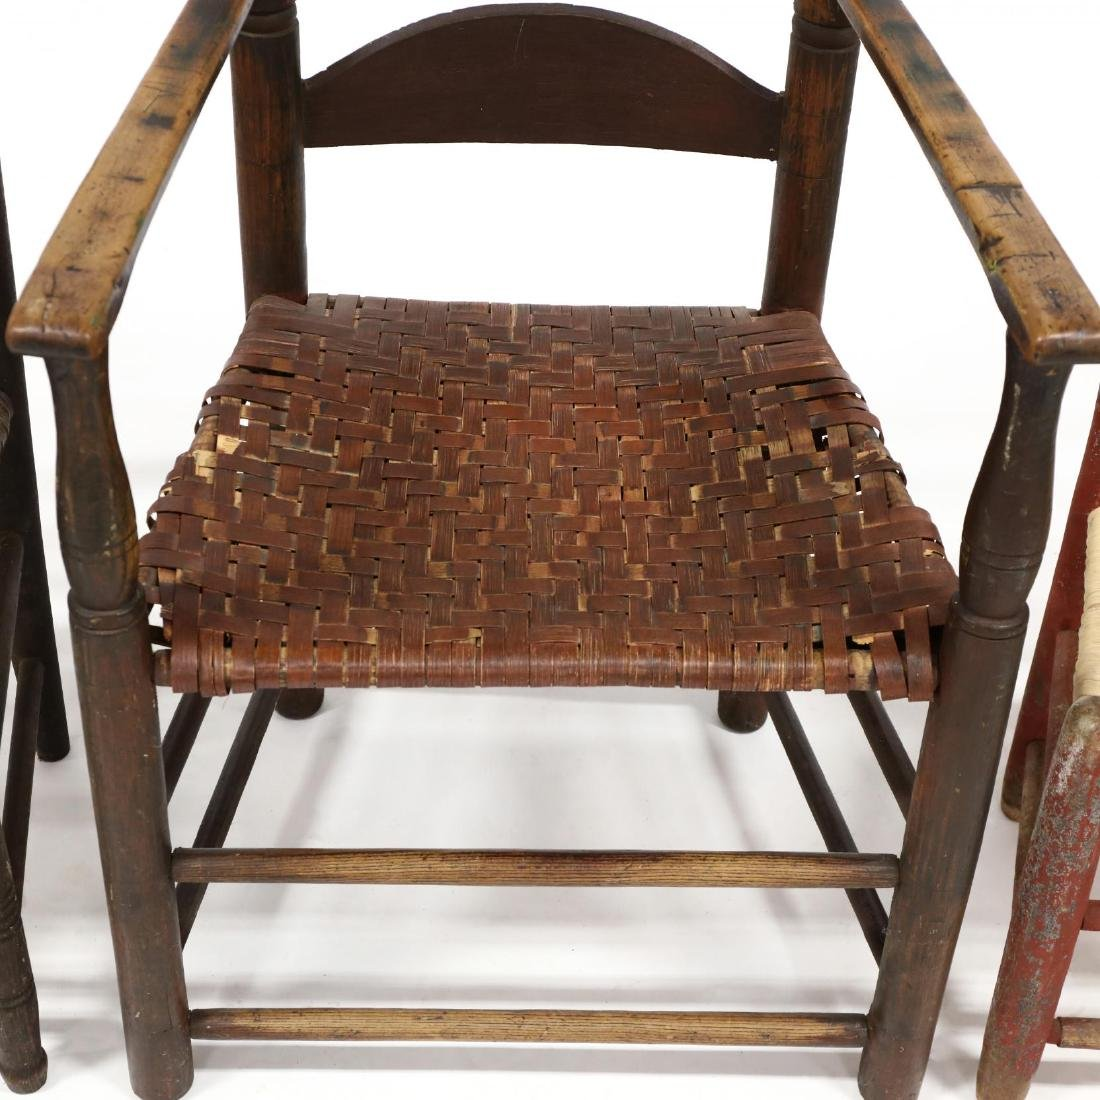 Three Antique American Ladderback Chairs - 2